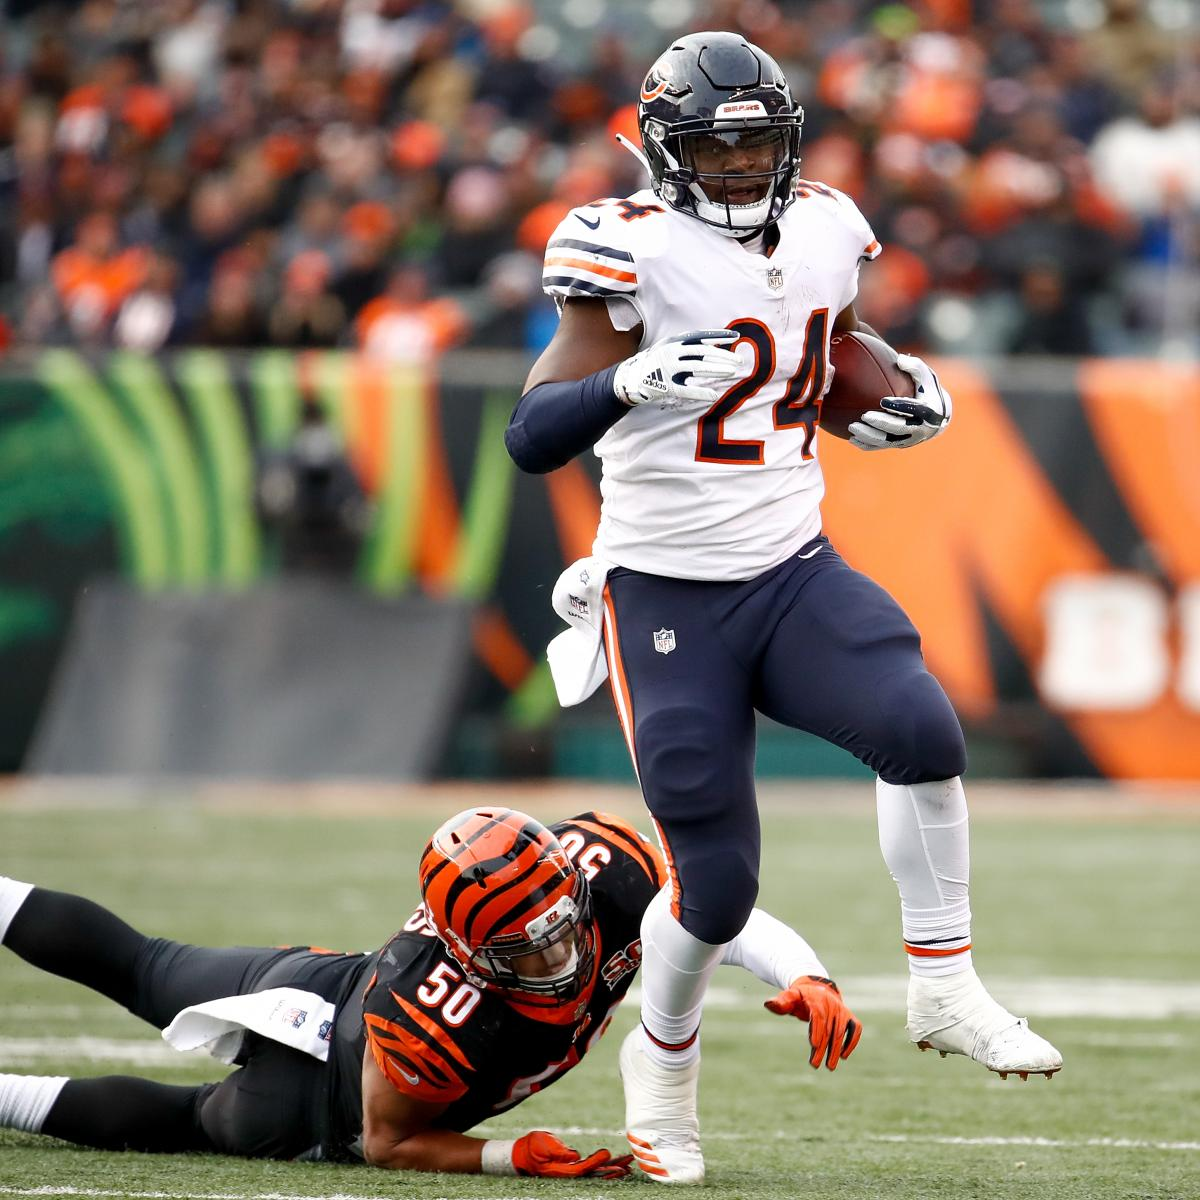 Nfl1000 Rookie Review From Week 9: Jordan Howard Sets Franchise History With Week 14 Showing